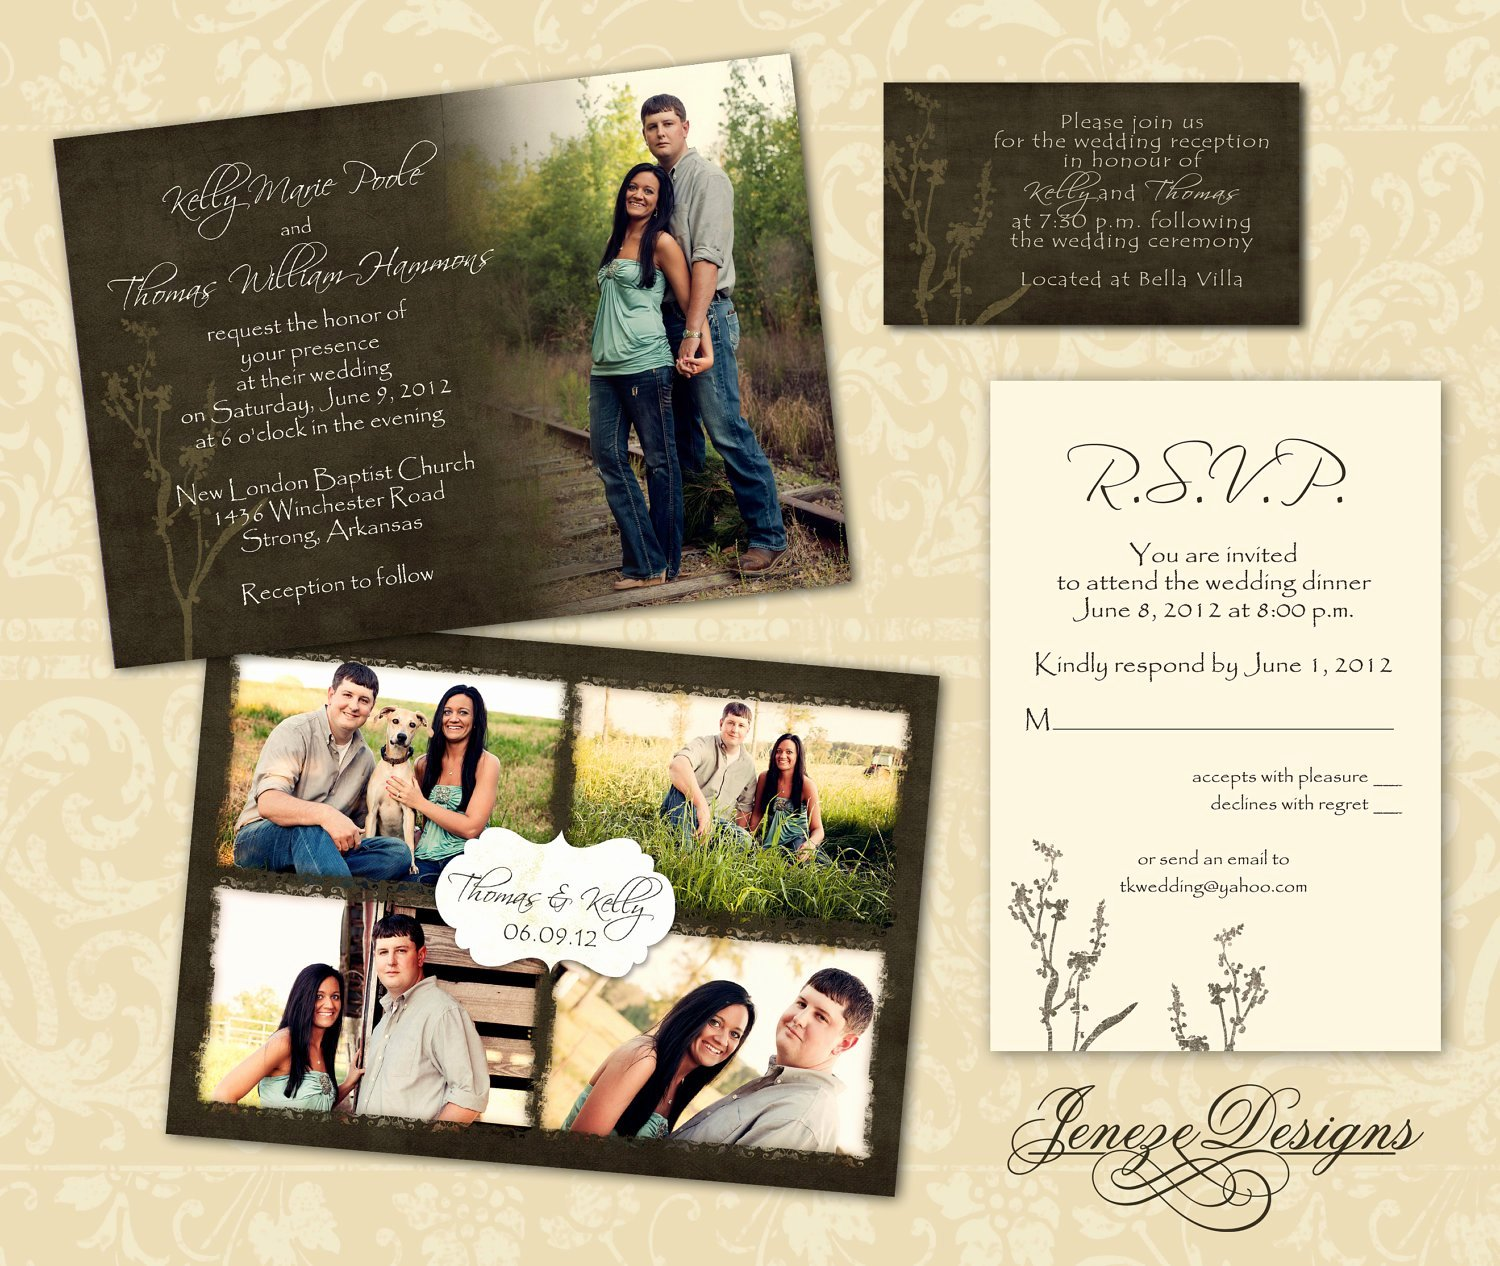 Wedding Invite Photoshop Template Elegant Wedding Invitation Template Graphers and Shop